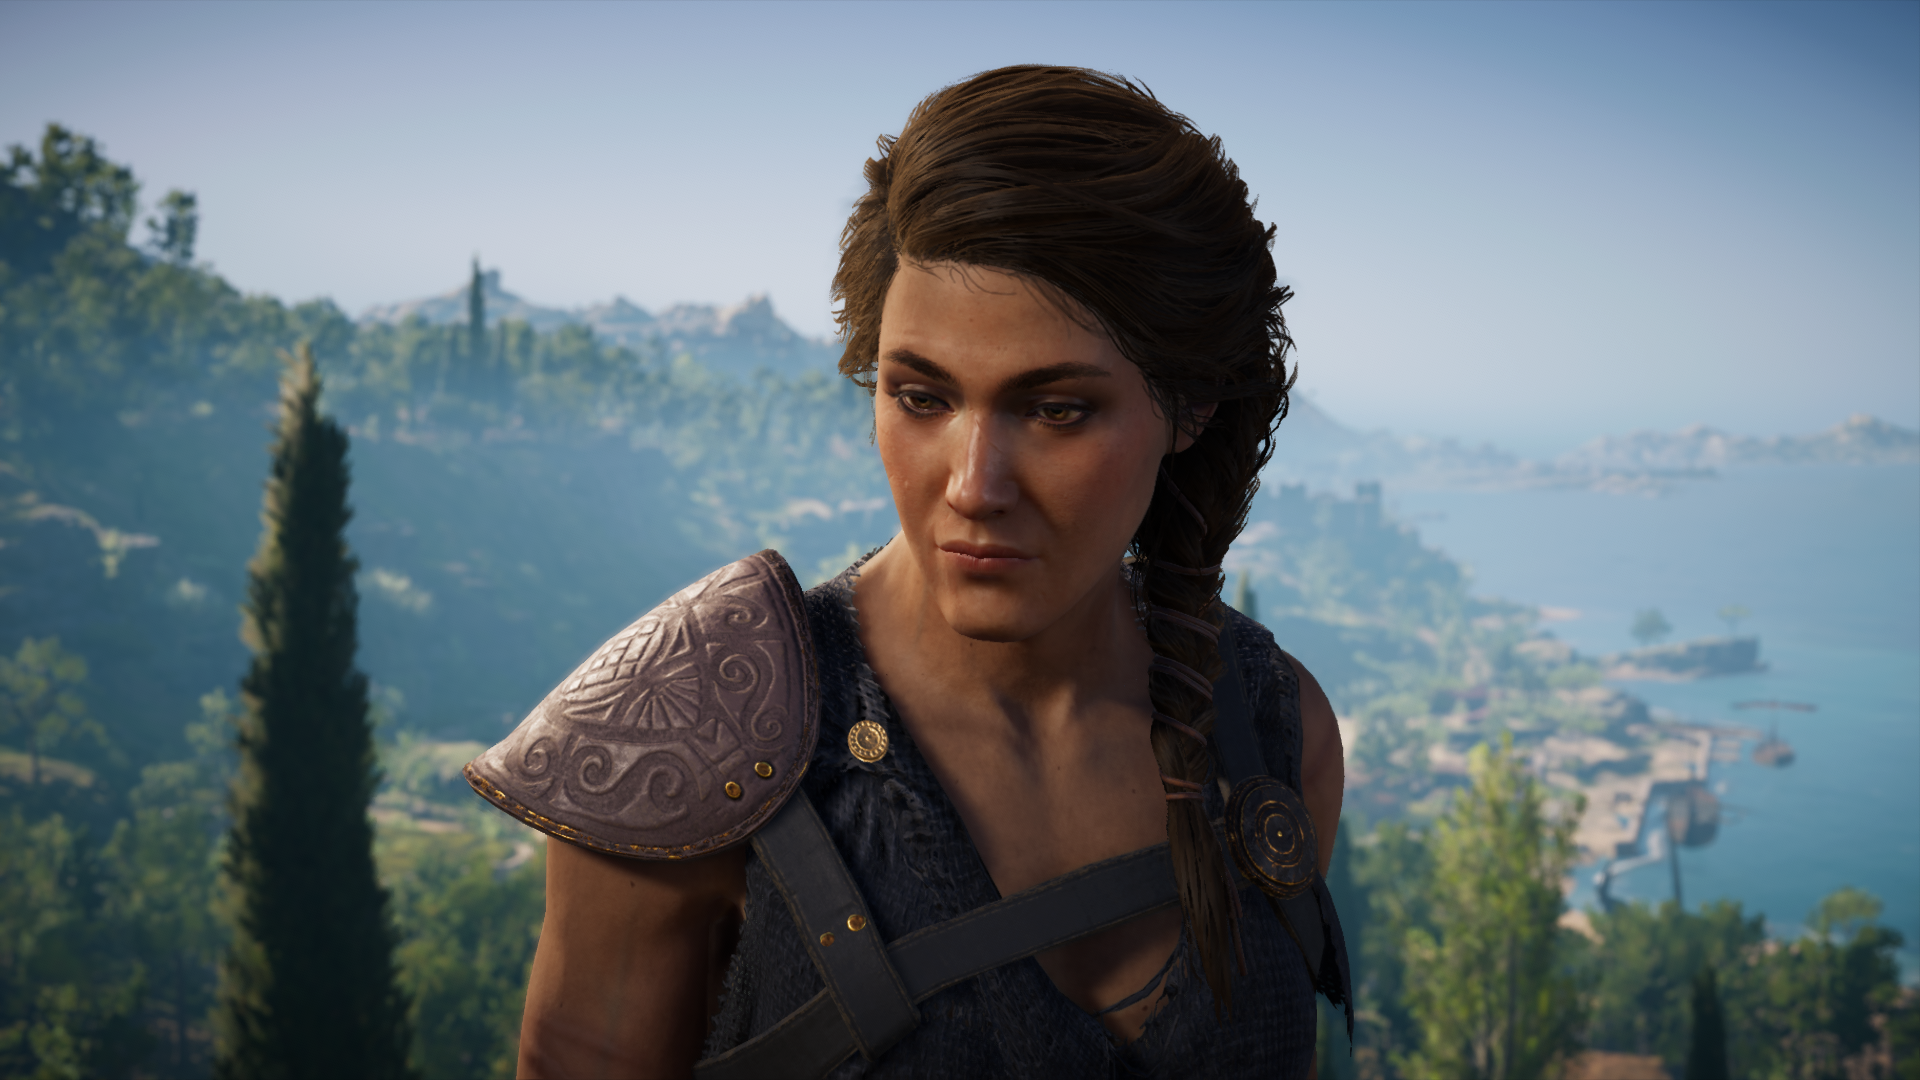 Assassin's Creed Odyssey's First Live Event Has Been Cancelled